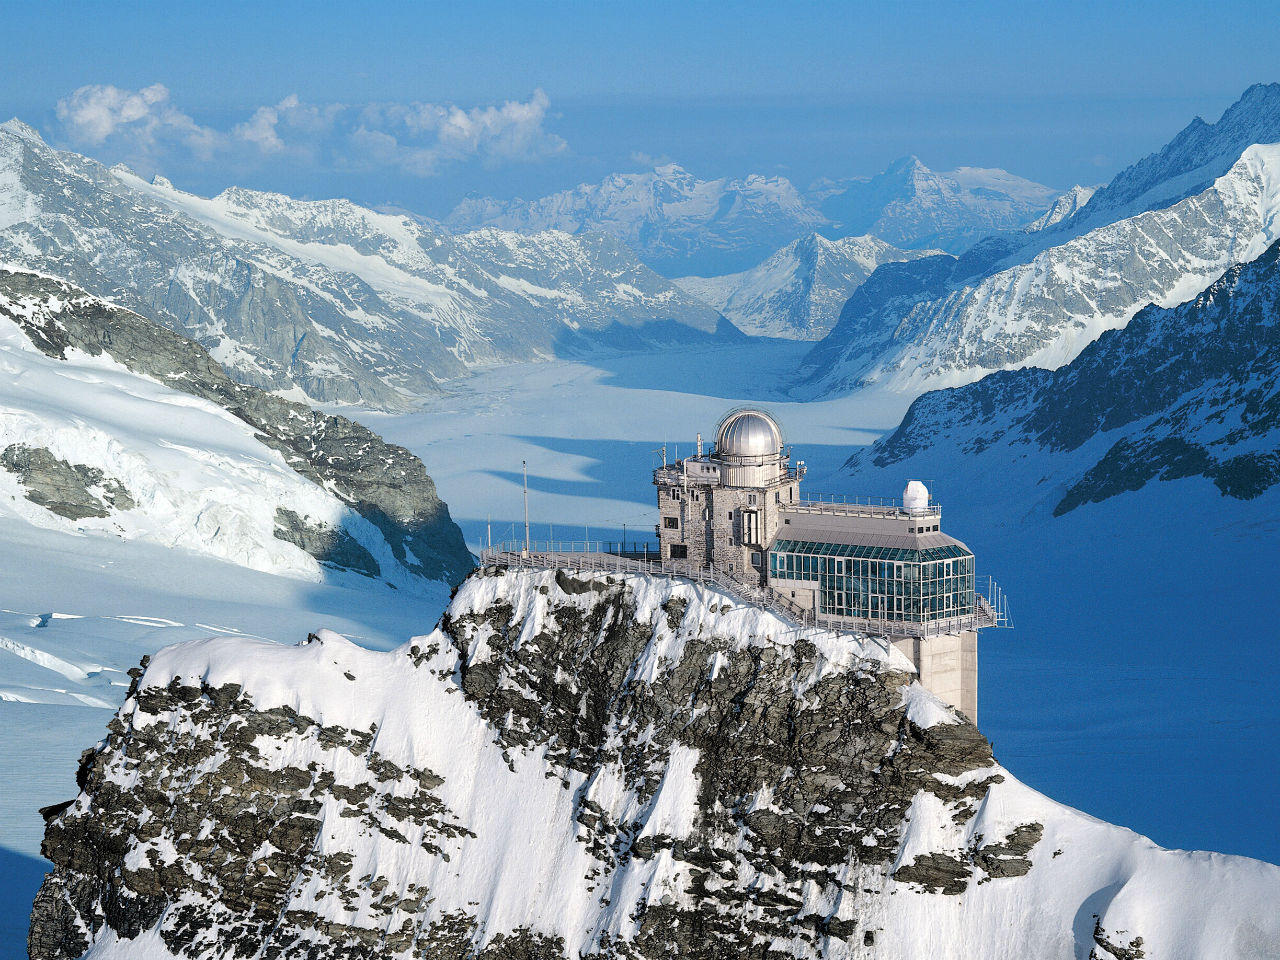 JungFrauJoch is the highest railway station in Europe.